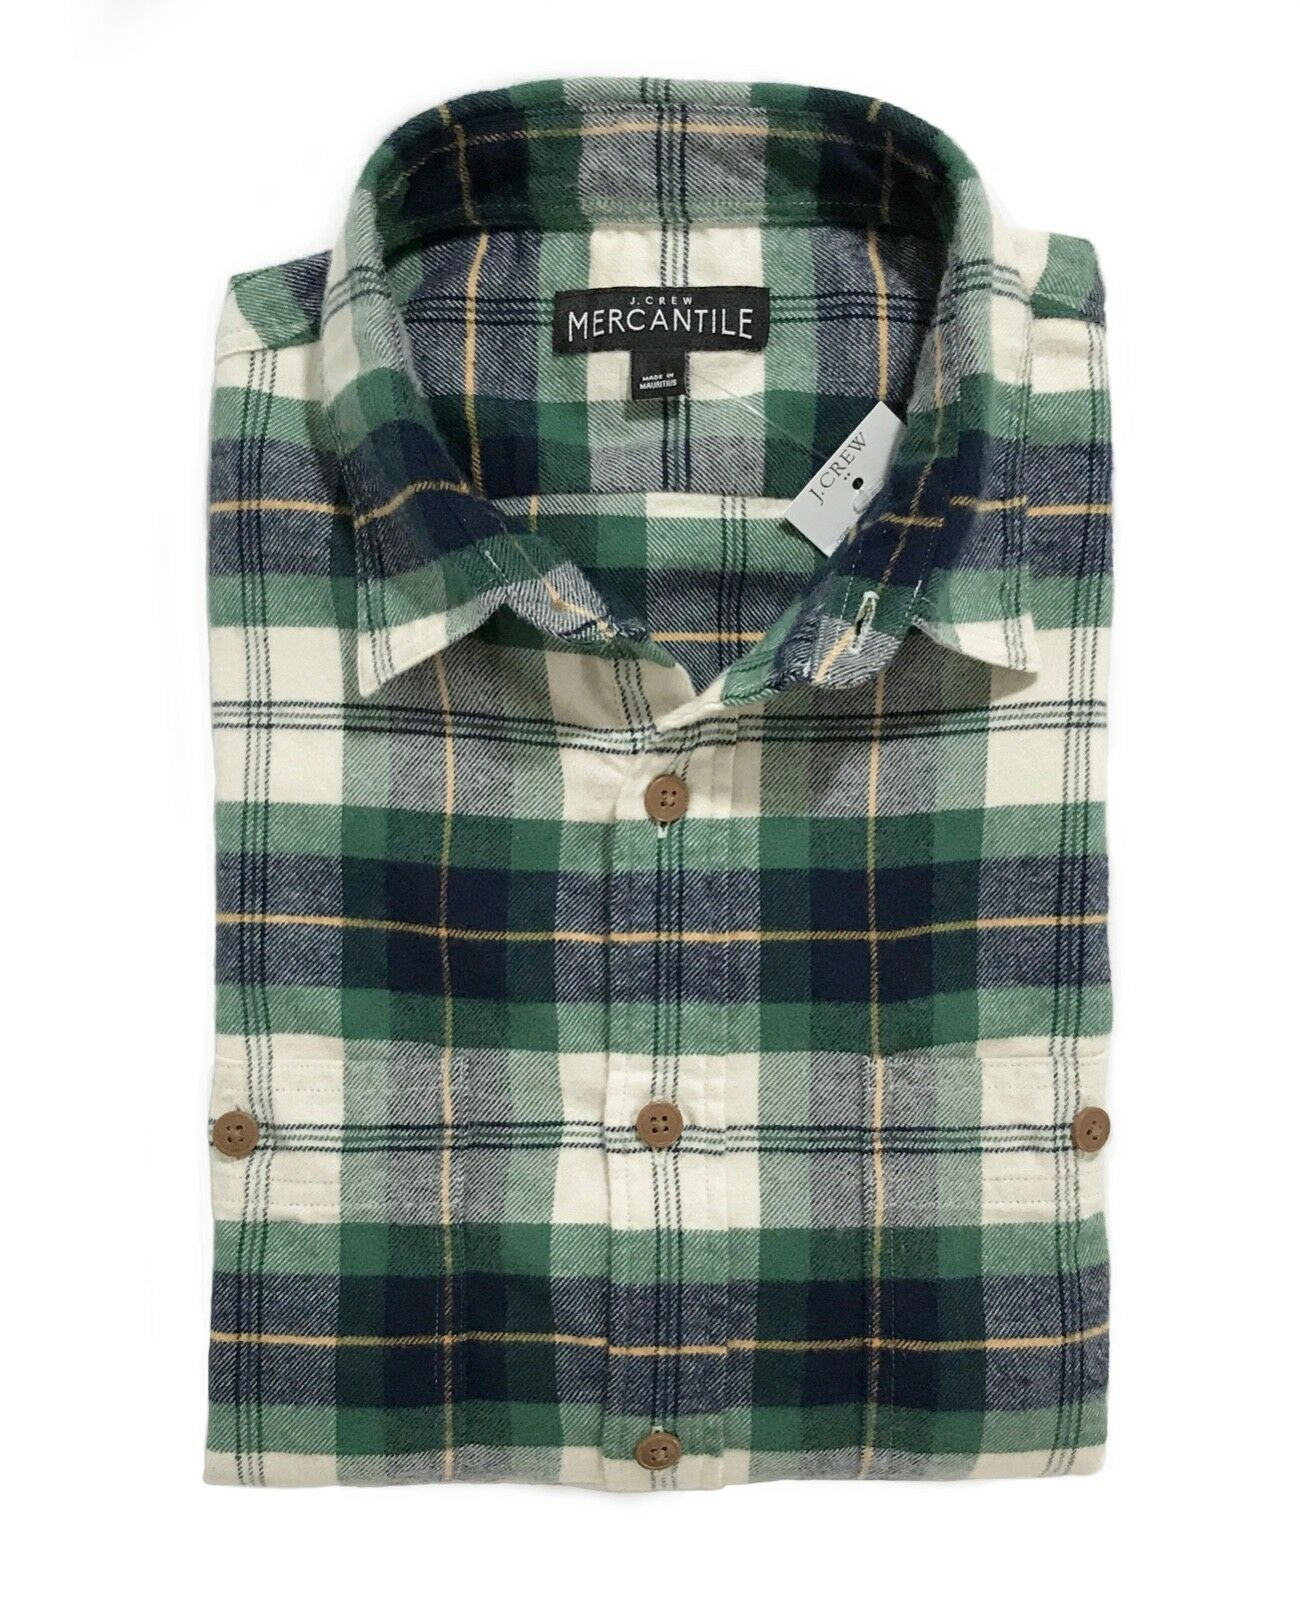 J.Crew Mercantile Mens S Slim Fit - NWT Green Navy Tartan Plaid Flannel Shirt